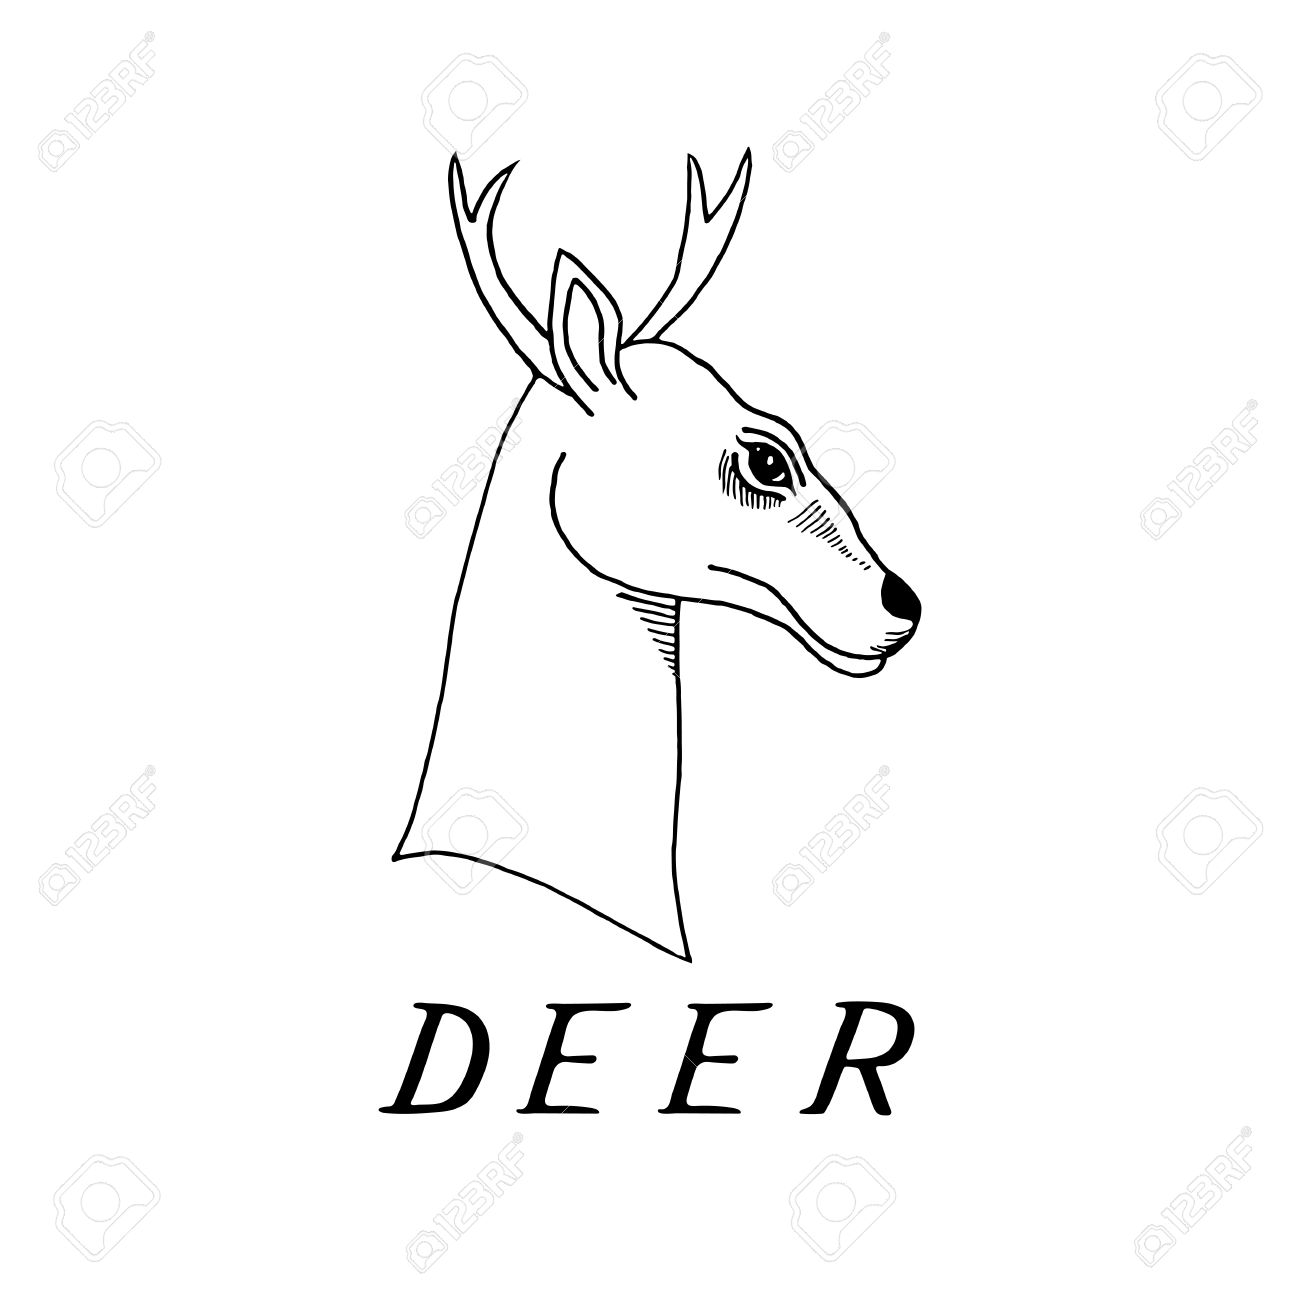 Hand draw a deer head with antlers to use for printing on t shirts